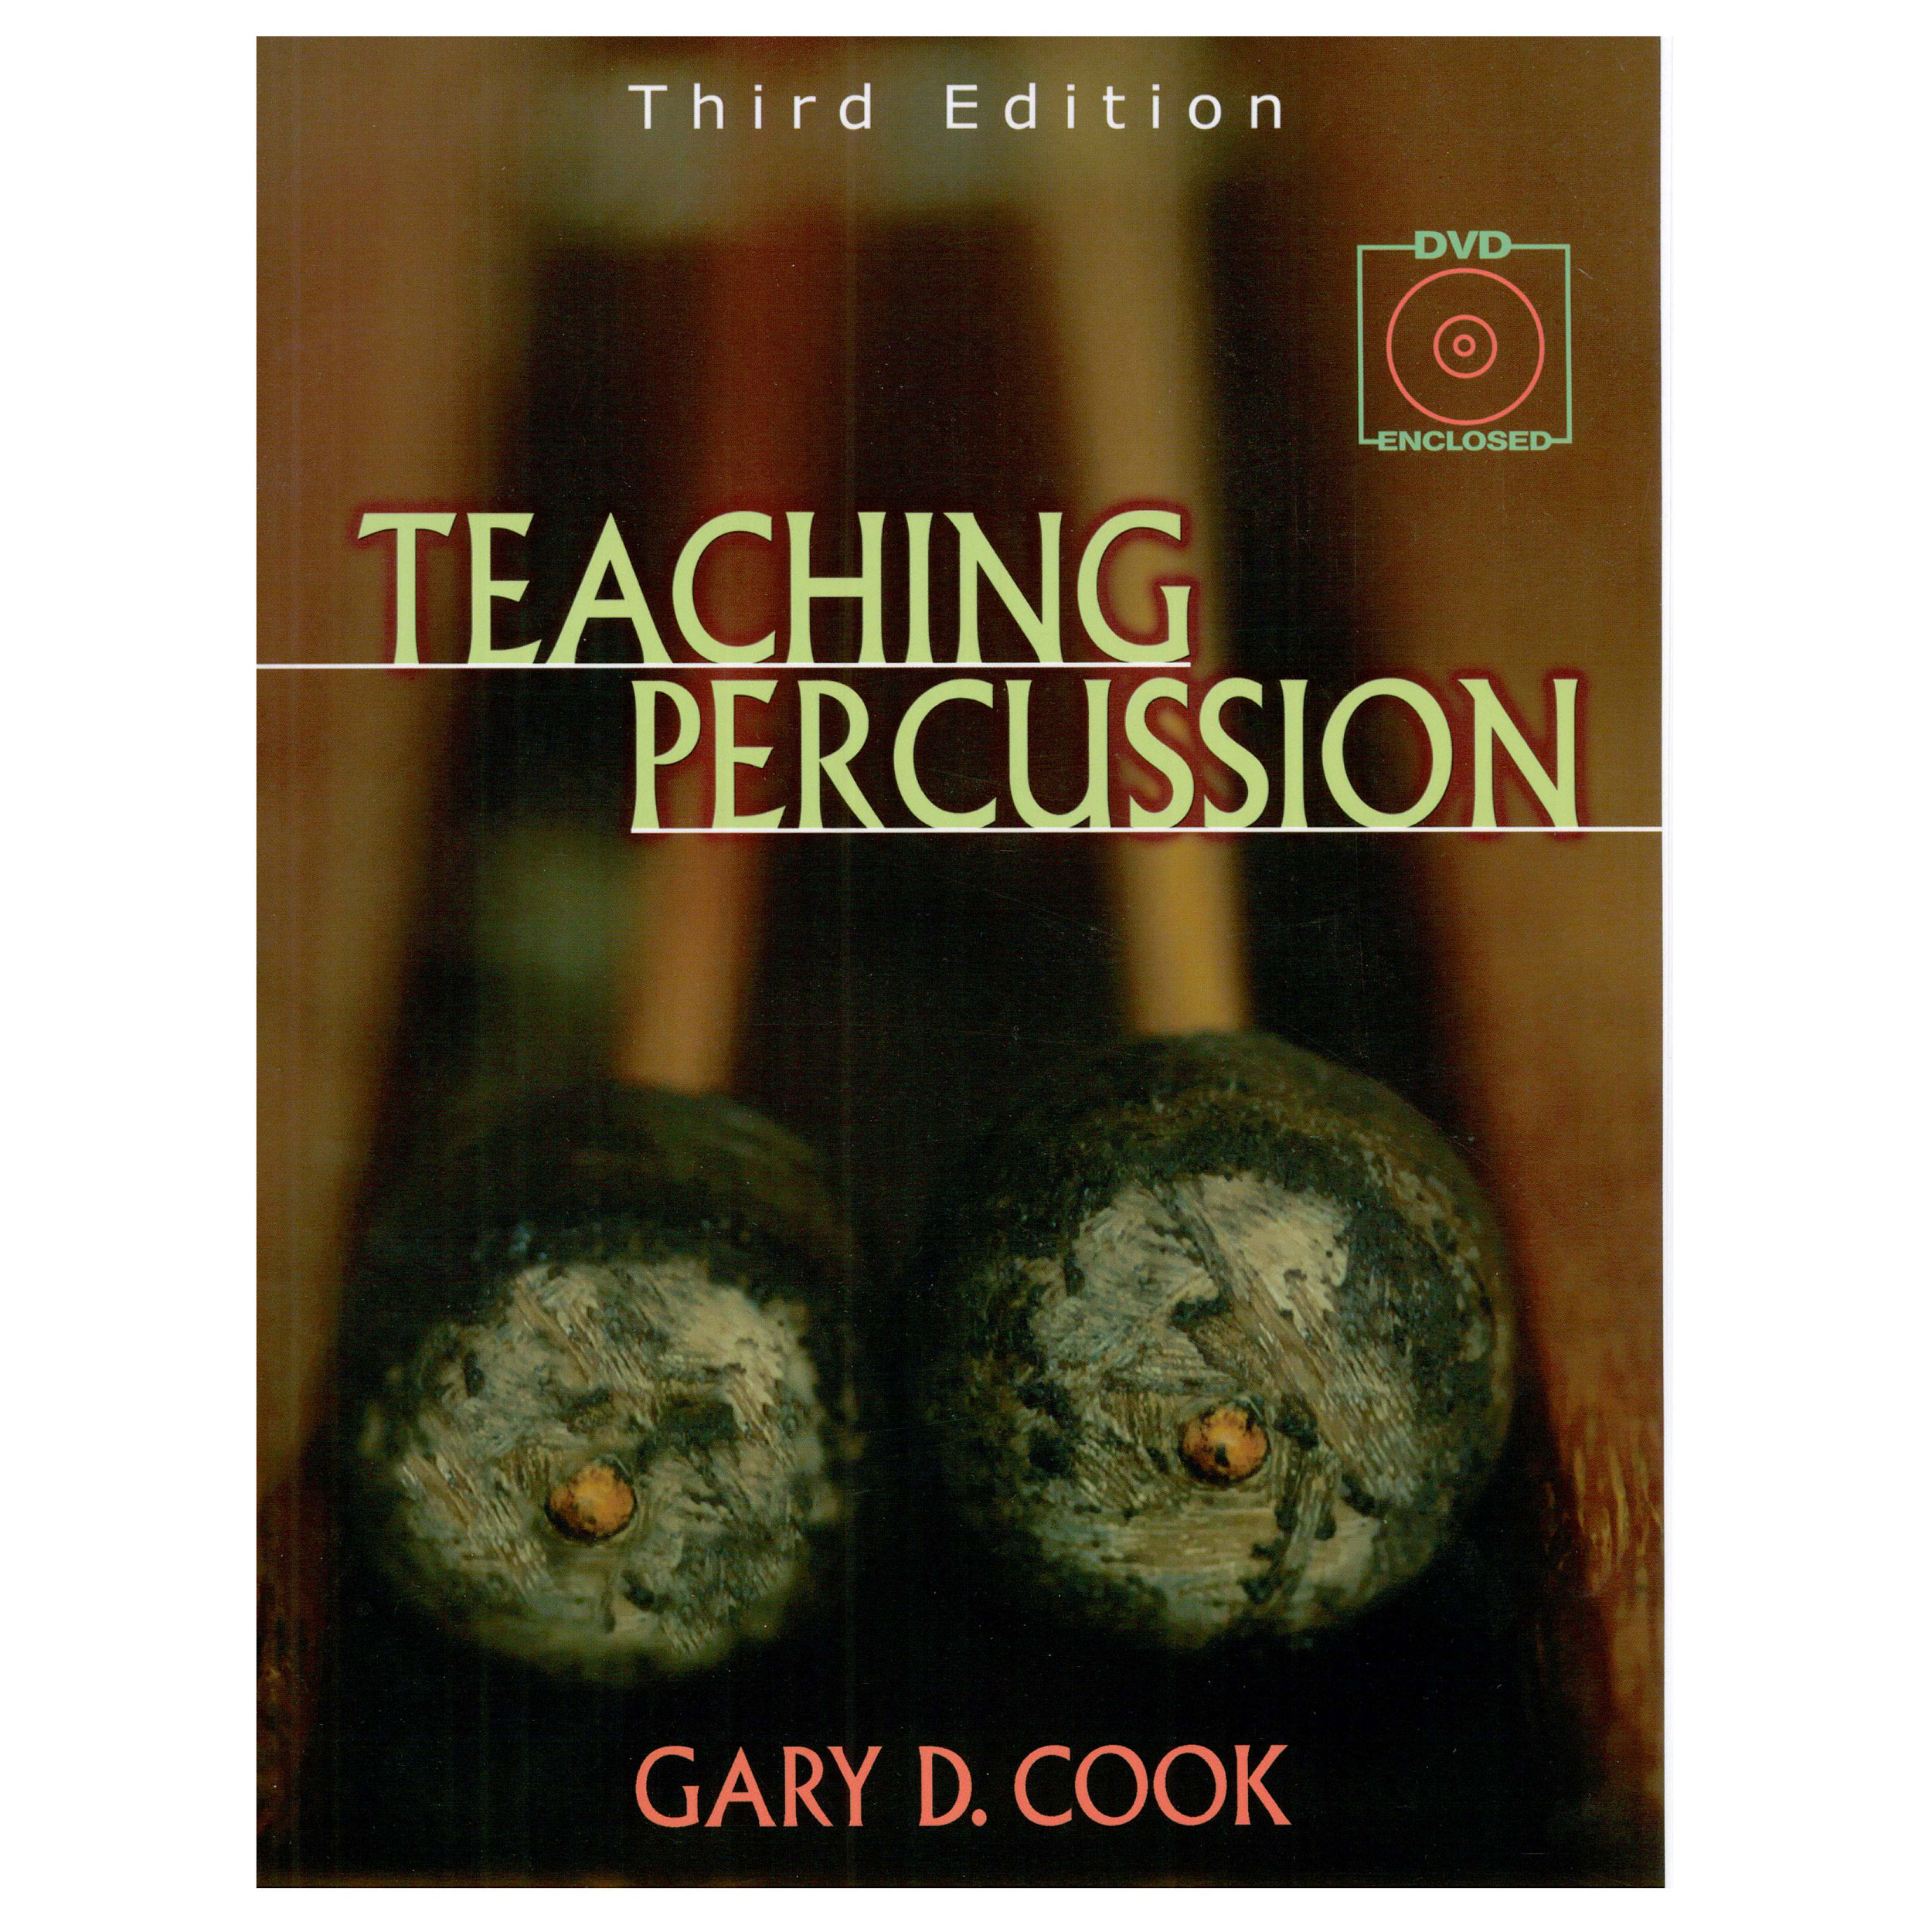 Teaching Percussion, 3rd Edition by Gary Cook